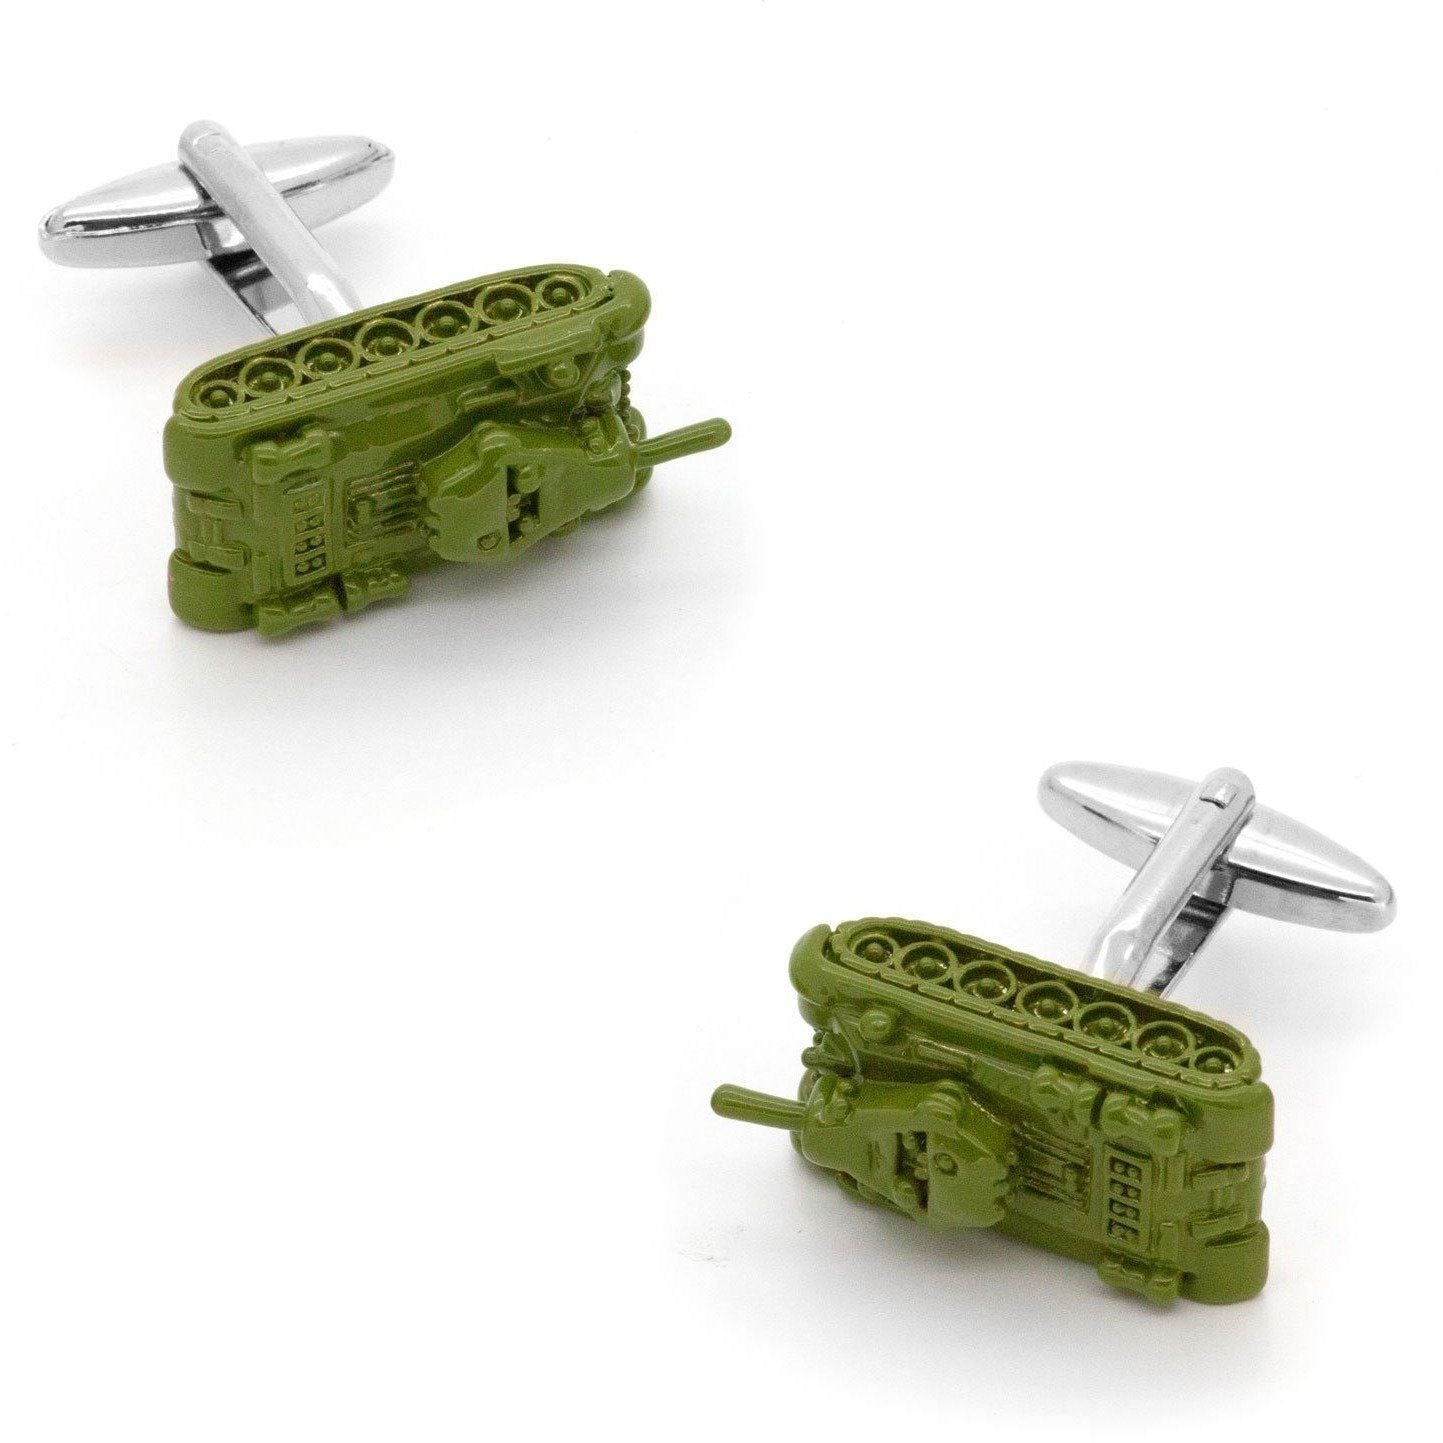 Green Army Tank Cufflinks, Novelty Cufflinks, Cuffed.com.au, CL6640, Automotive, Military, Military & Weaponry, Clinks Australia